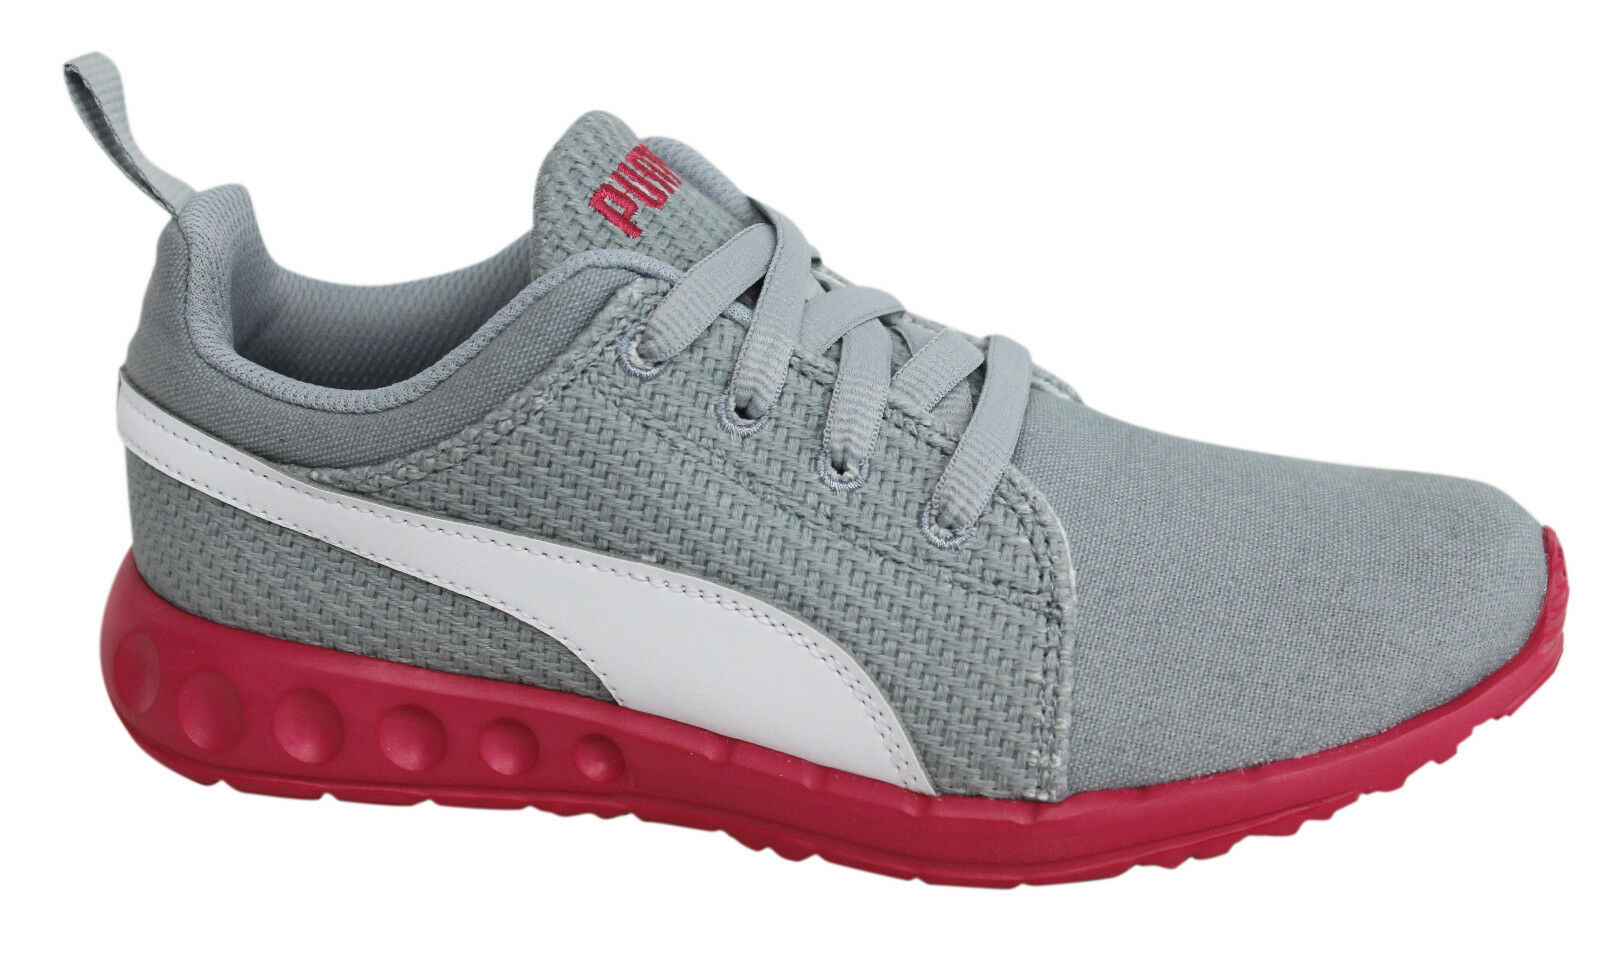 Puma Carson Runner CV Lace Up Grey Pink Textile Unisex Trainers 189298 01 D89 Seasonal clearance sale